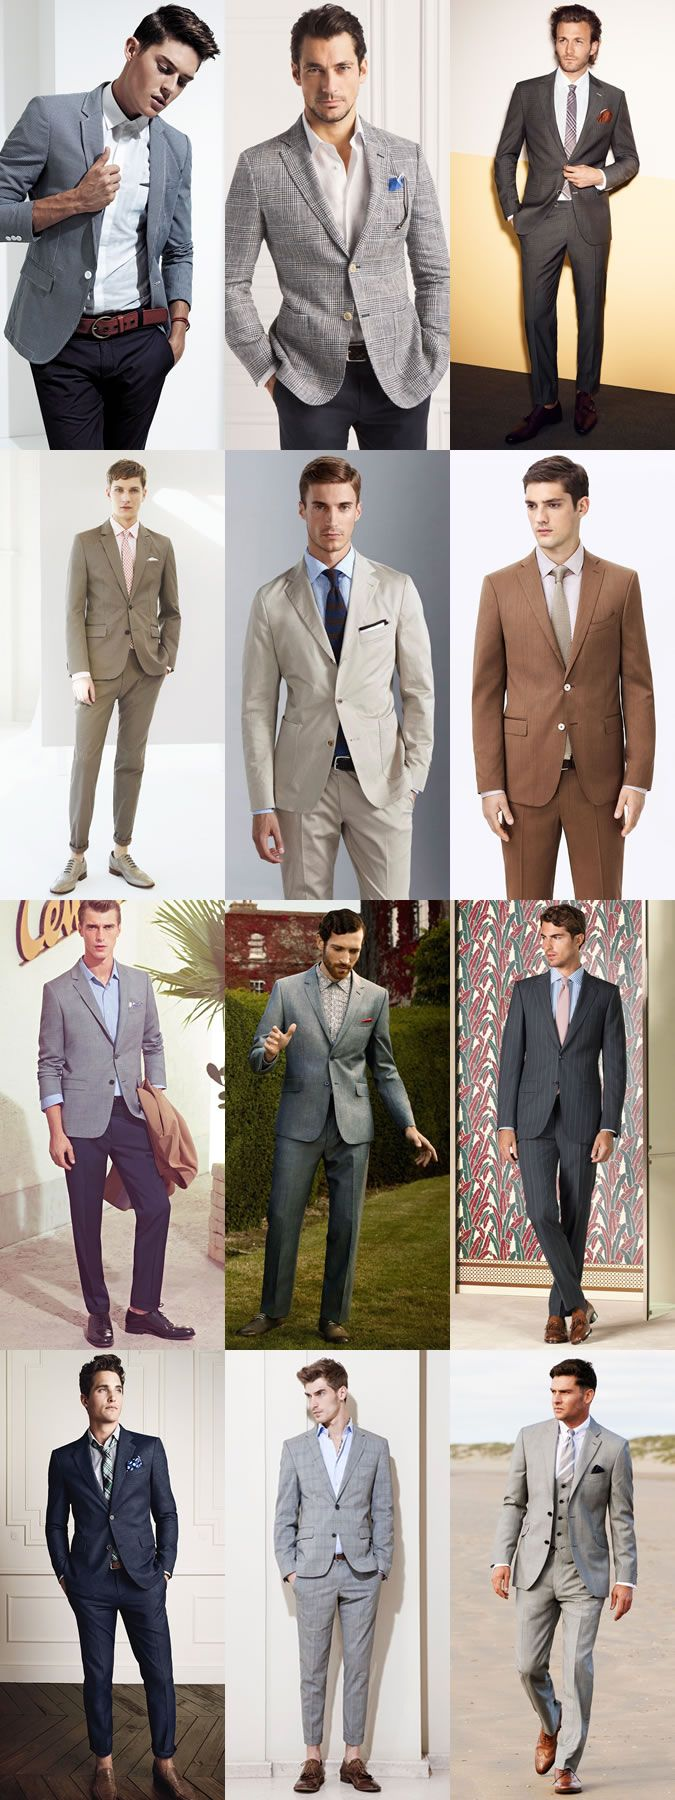 25  best ideas about Summer wedding men on Pinterest | Men wedding ...